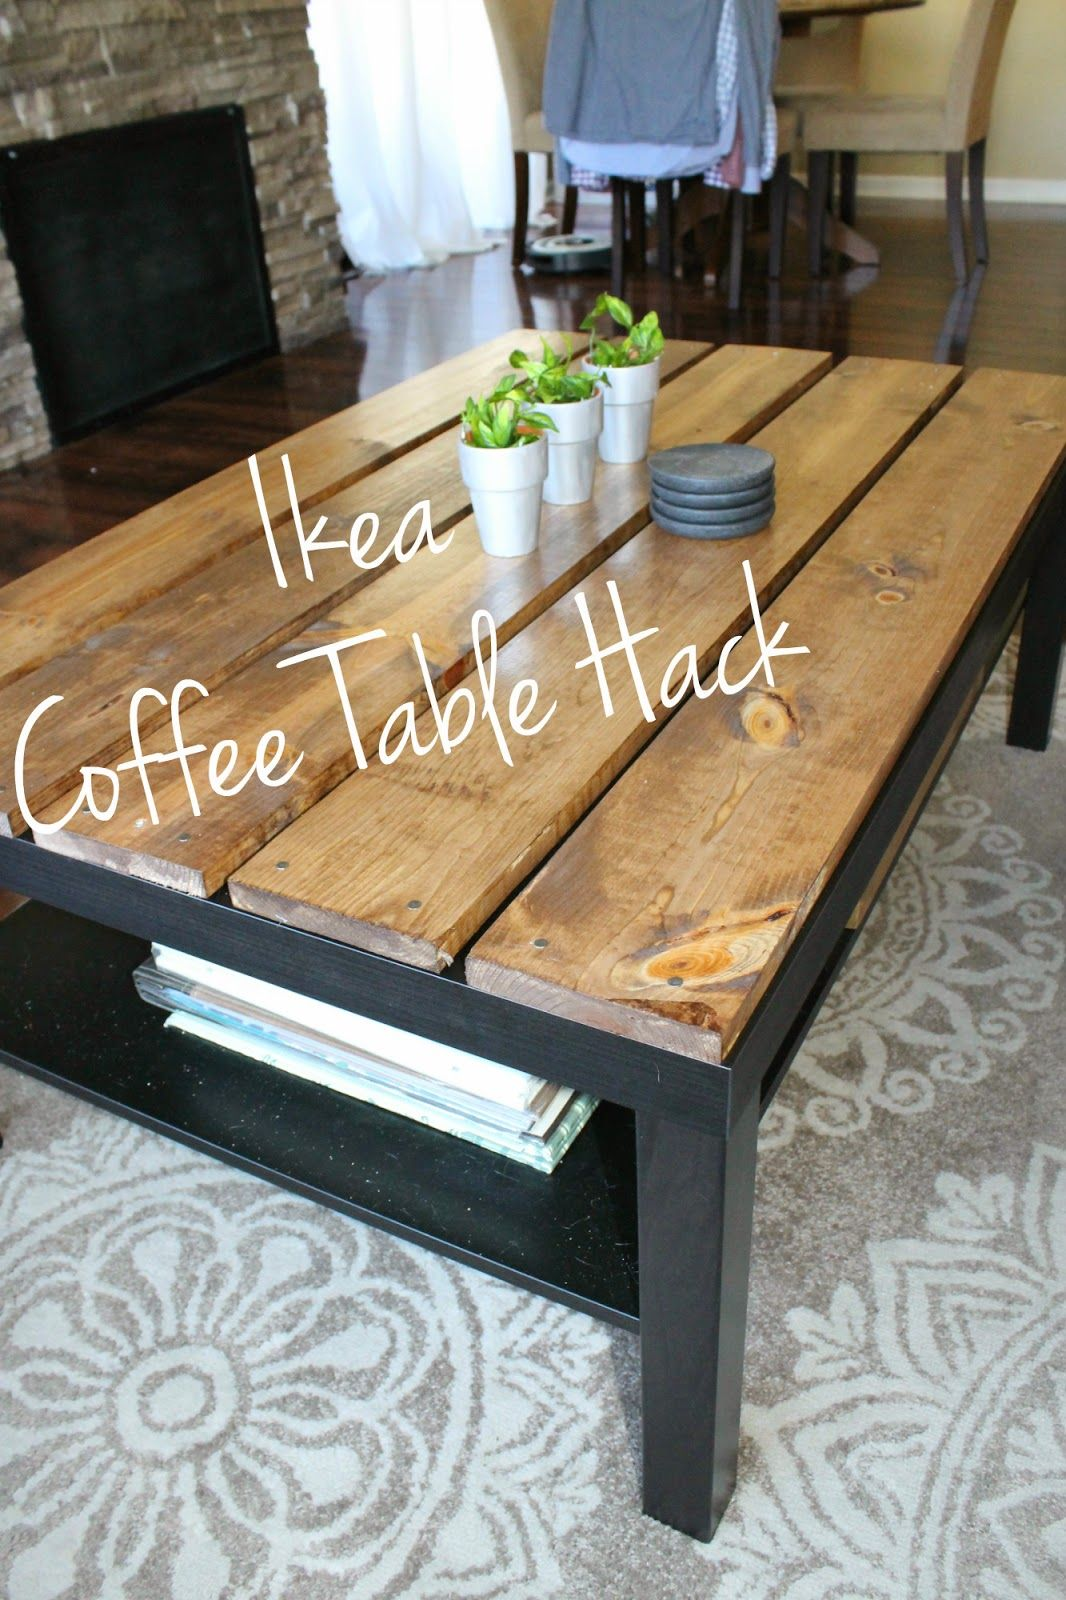 The Weekender Wife Ikea Coffee Table Hack Ikea Couchtisch Couchtisch Kaufen Zuhause Diy